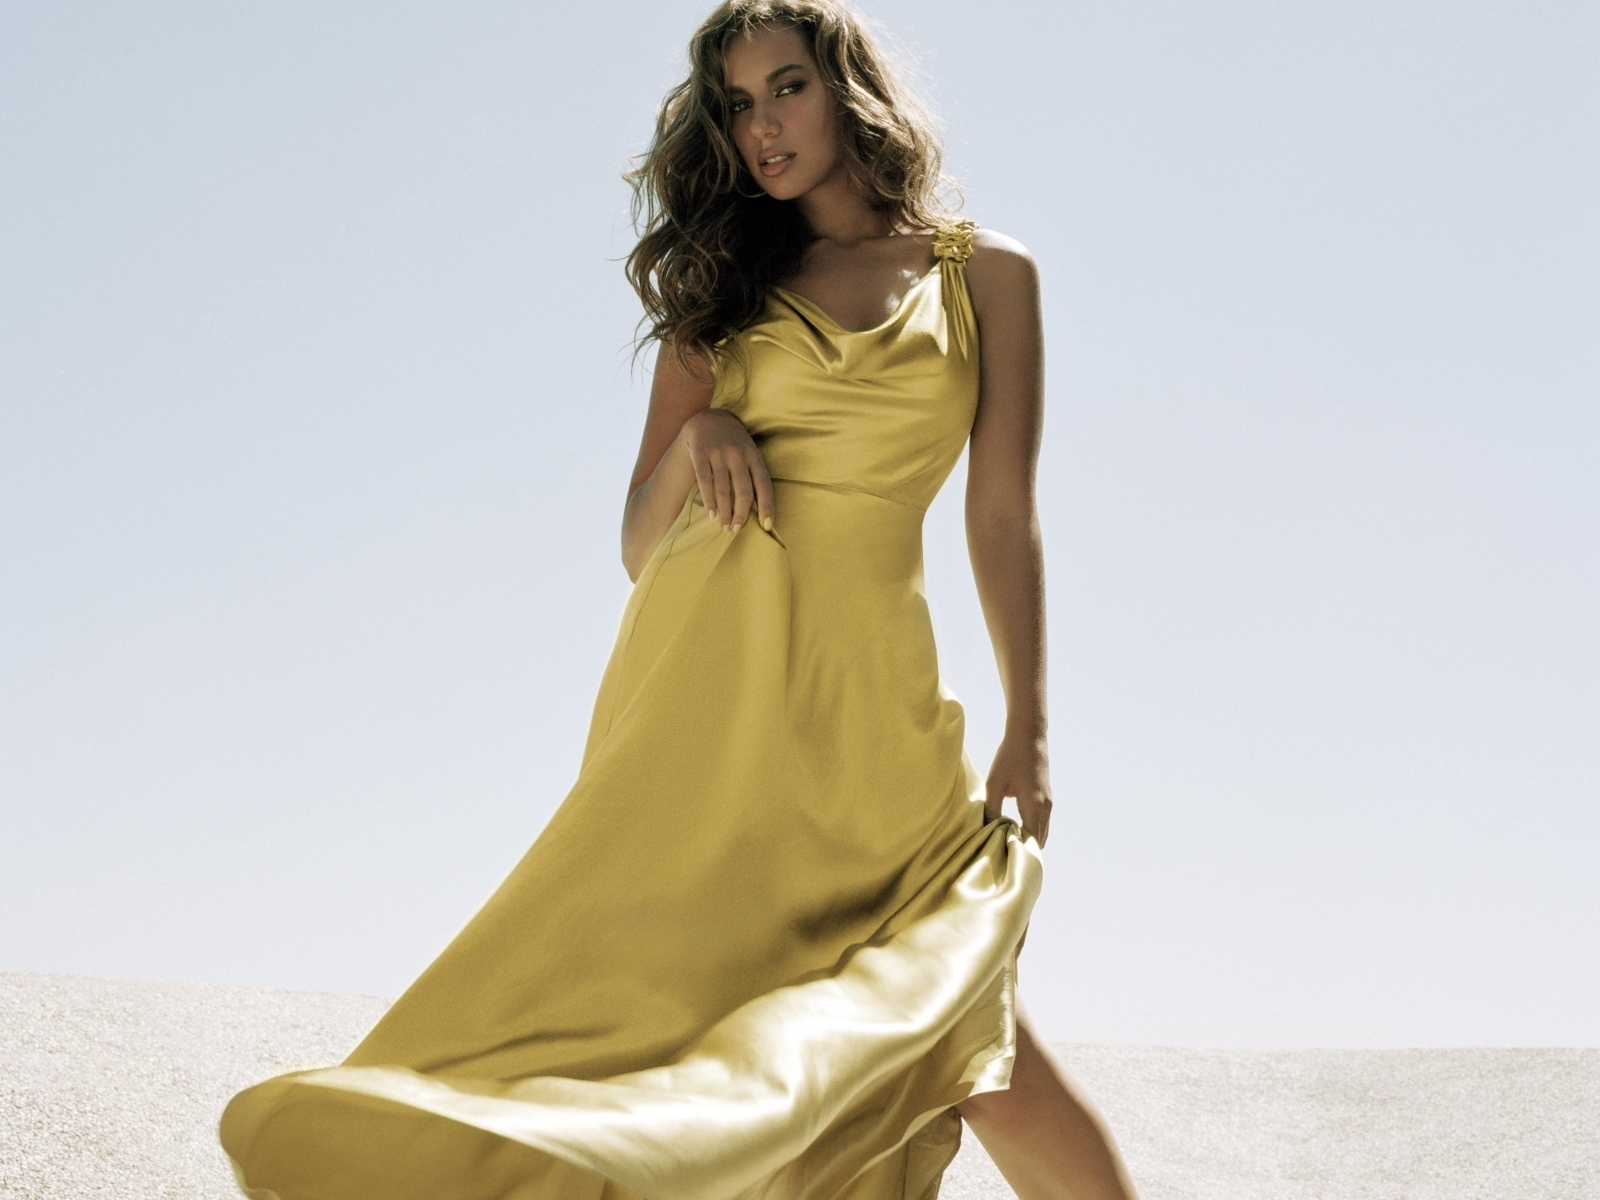 http://images2.fanpop.com/images/photos/6600000/Leona-leona-lewis-6681514-1600-1200.jpg